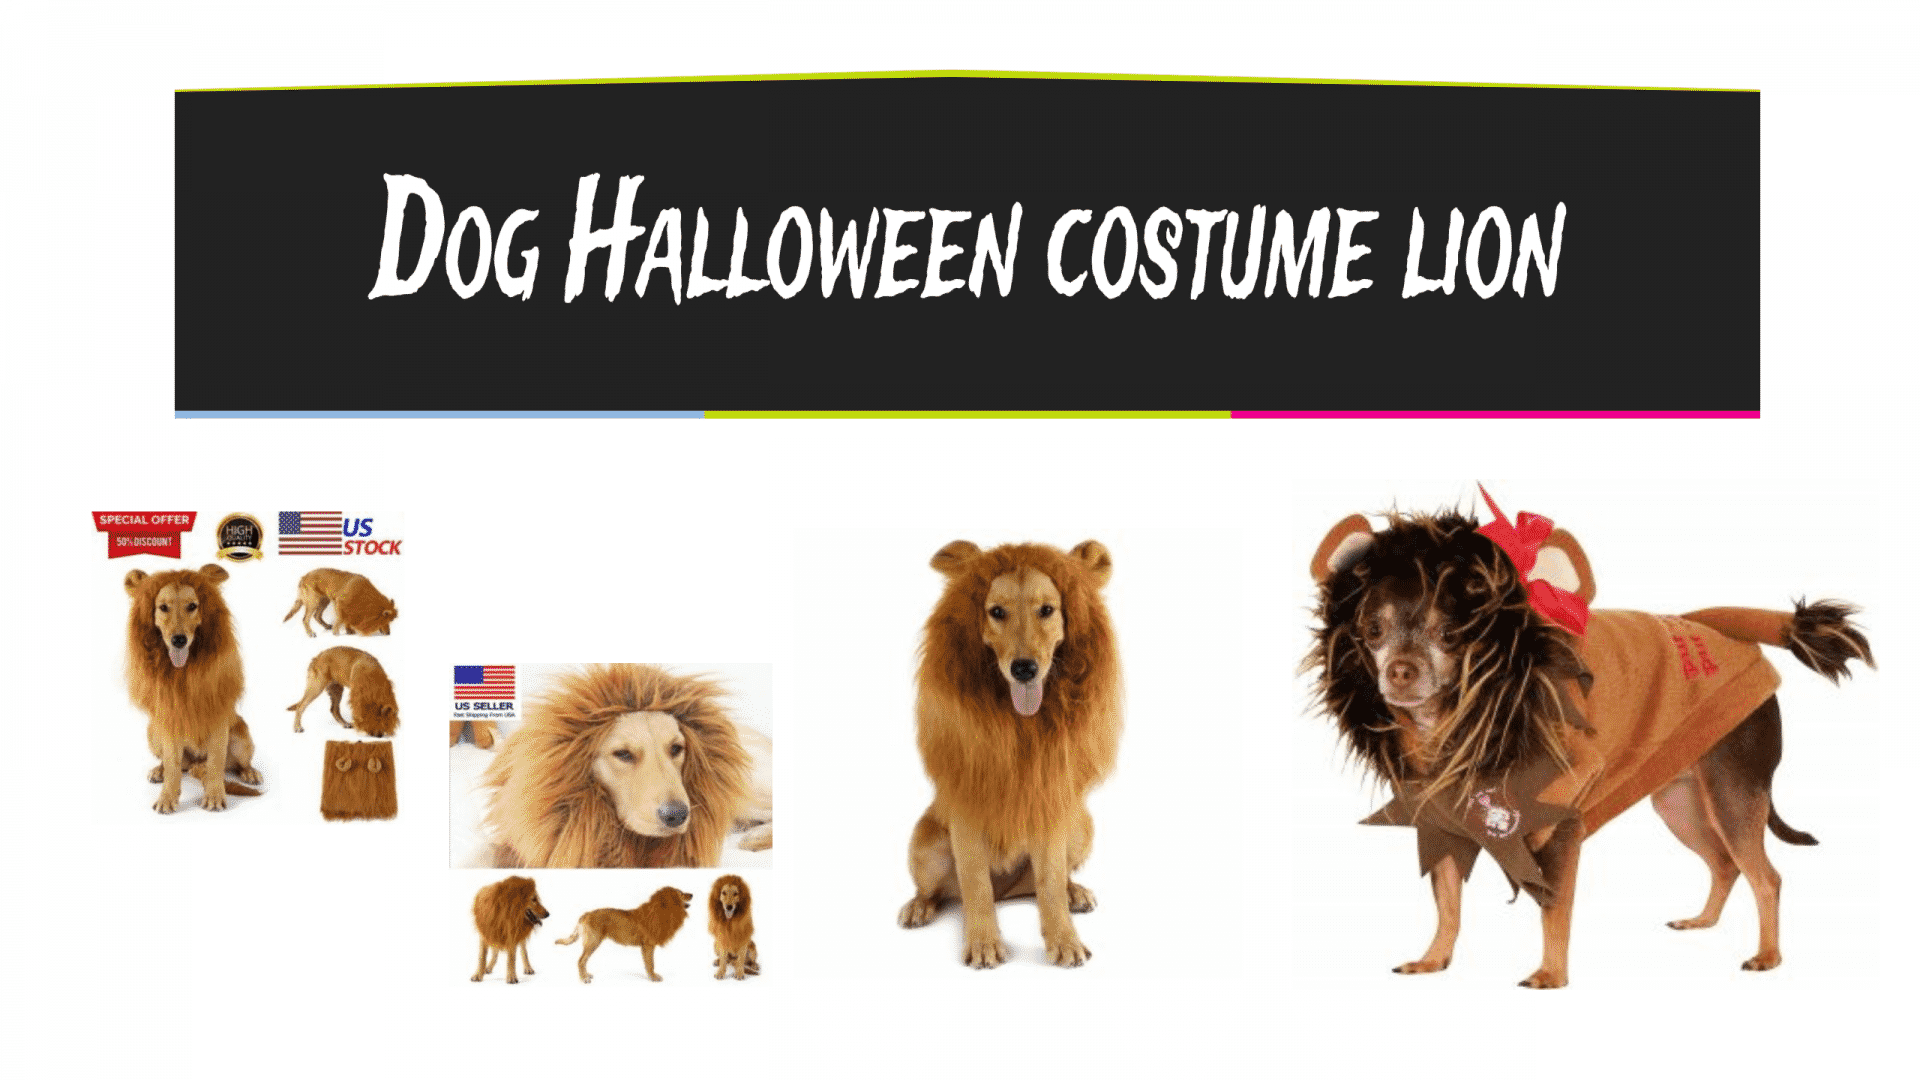 Dog Halloween costume lion